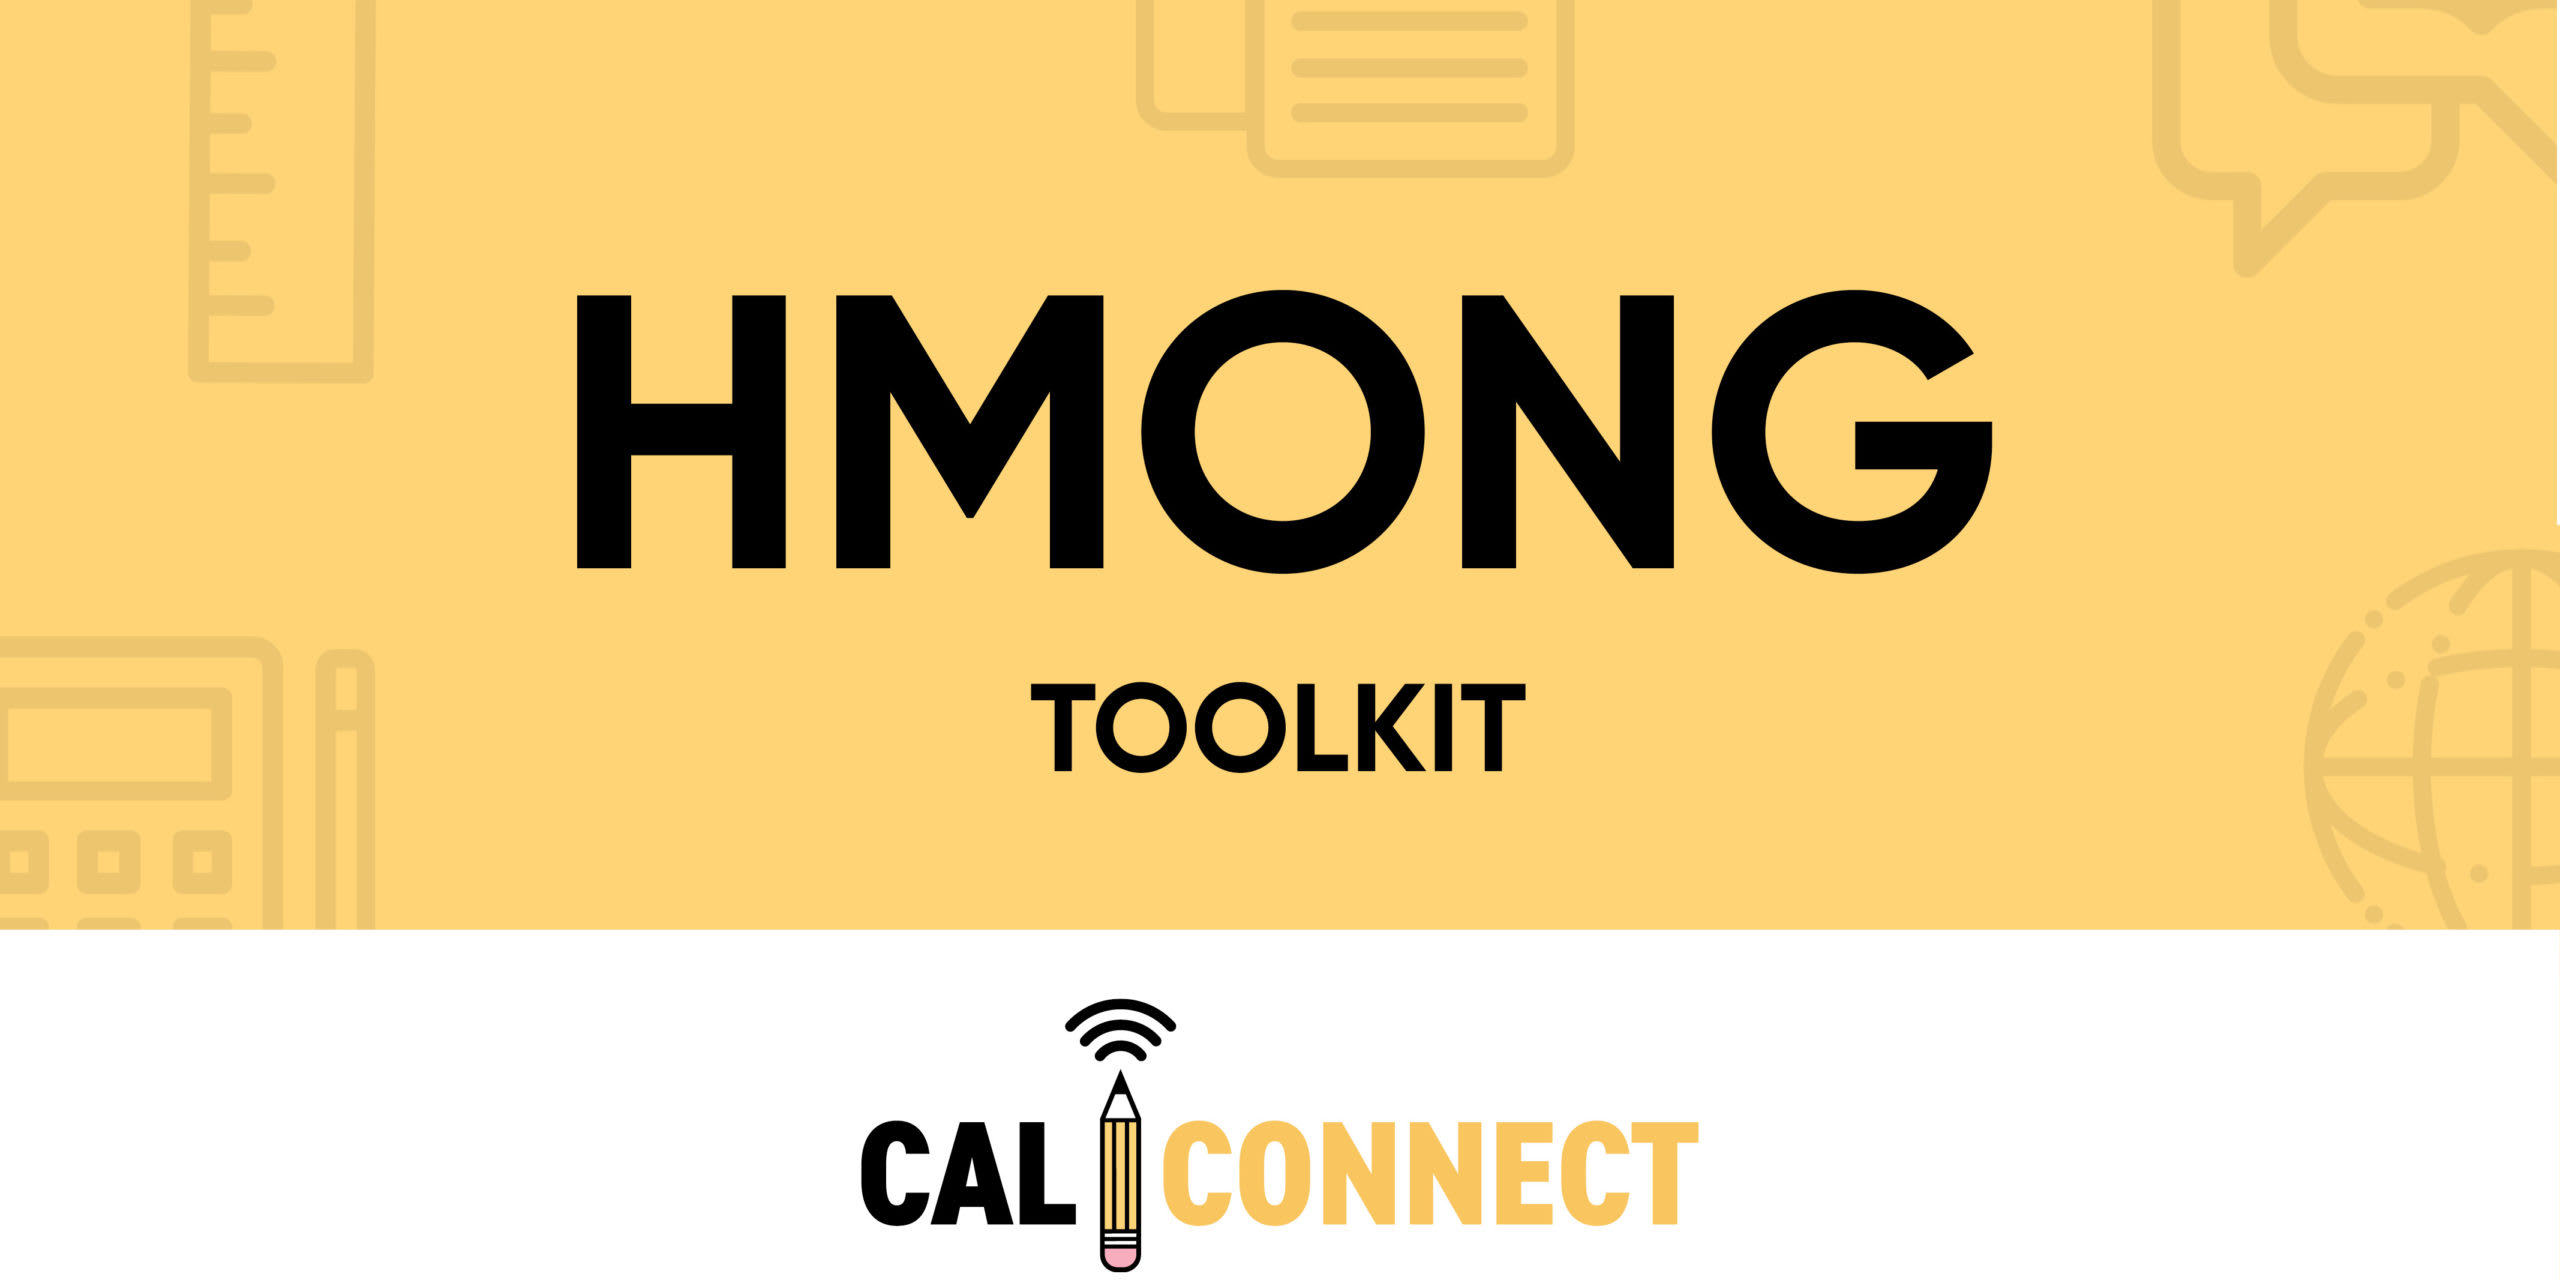 CALConnect Hmomg Toolkit